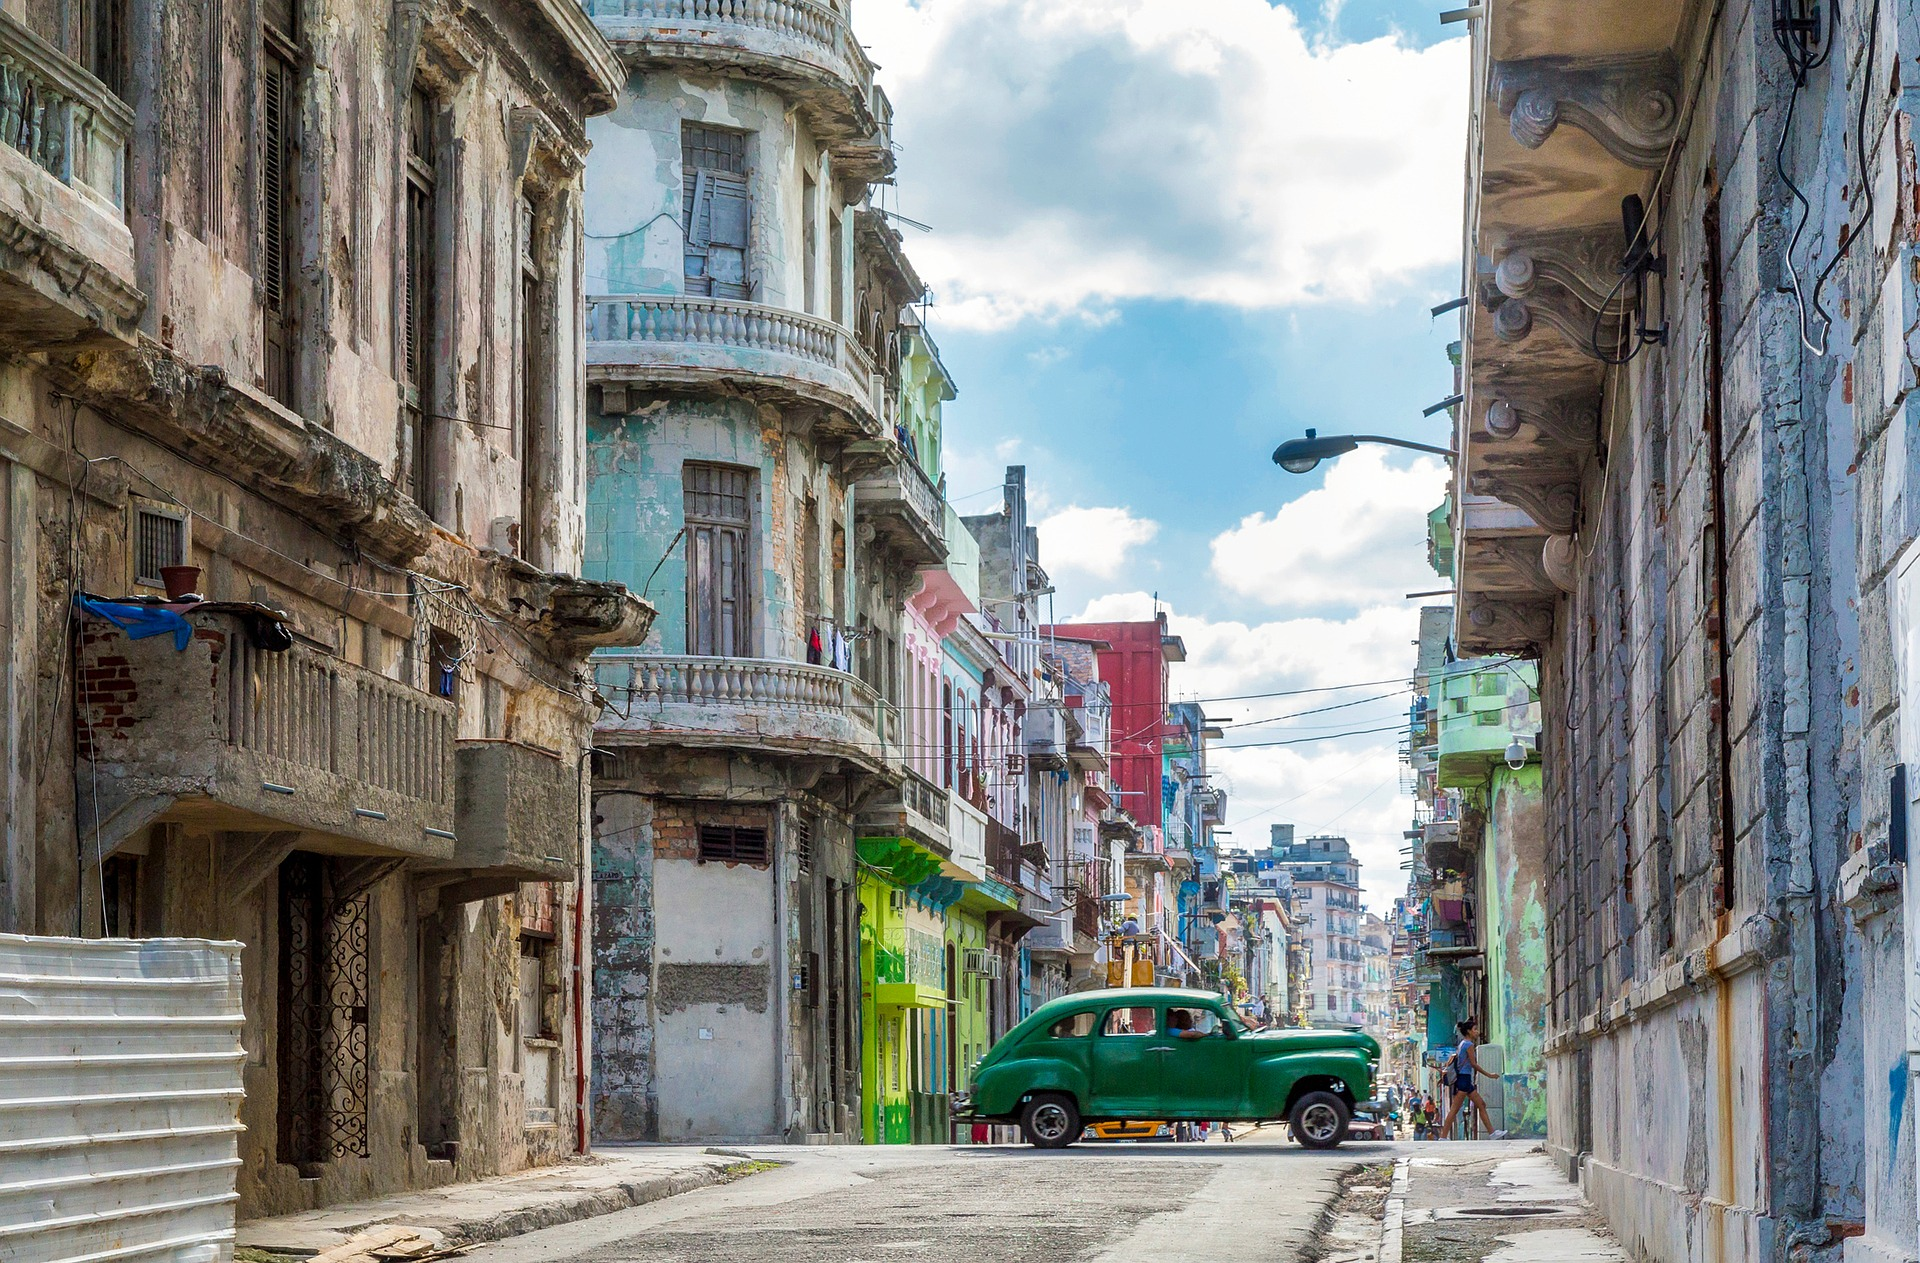 Cuba has already welcomed half-a-million visitors, signalling a strong year ahead